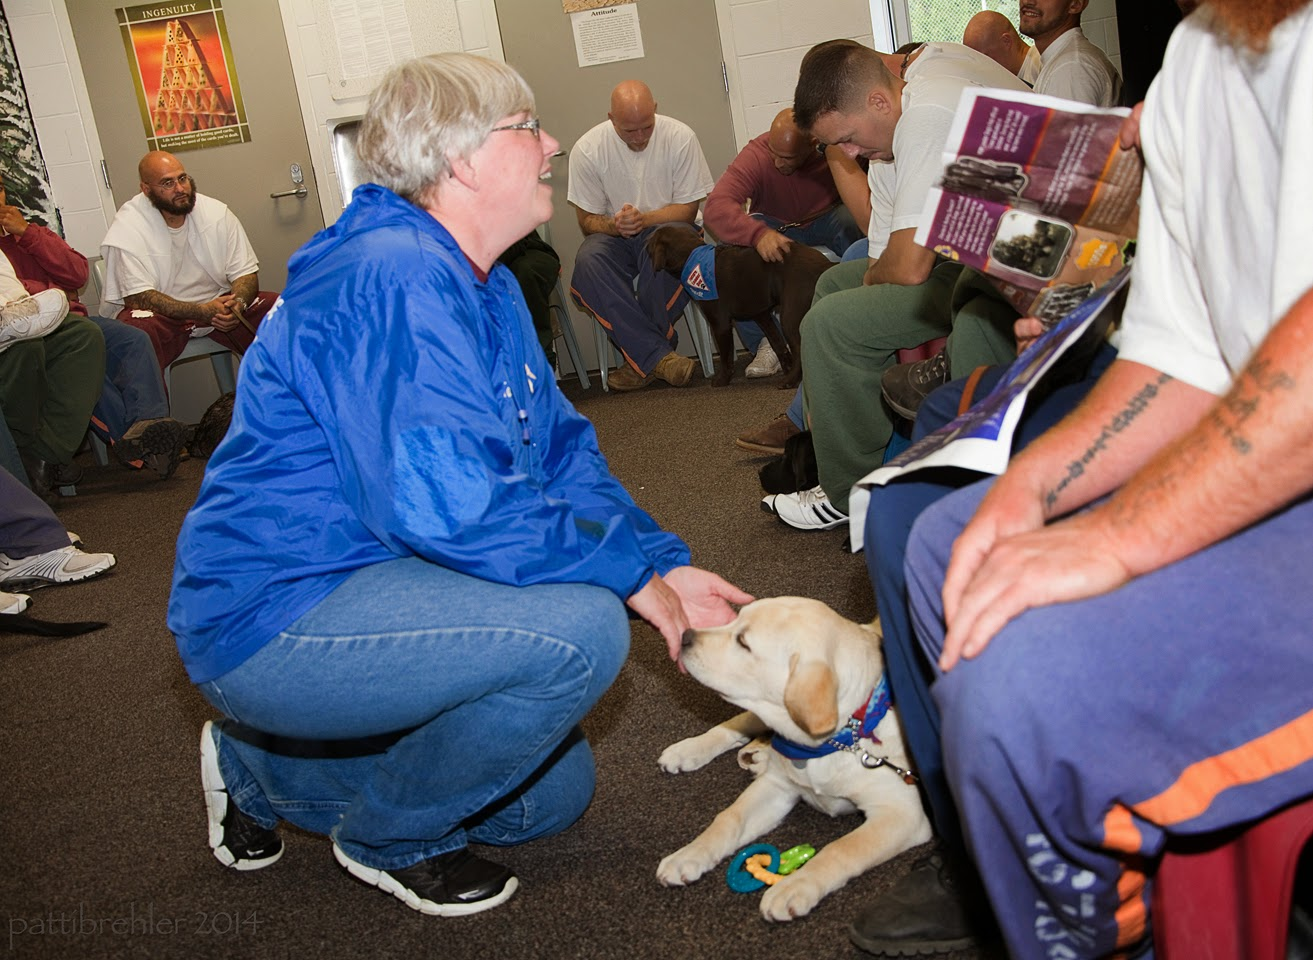 A woman wearing blue jeans and a royal blue windbreaker is squatting done in the middle of a room full of men inmates. She is facing the right and her hands are reaching down to a young yellow lab puppy lying on the carpeted floor in front of her. She is looking at the men seated behind the puppy.